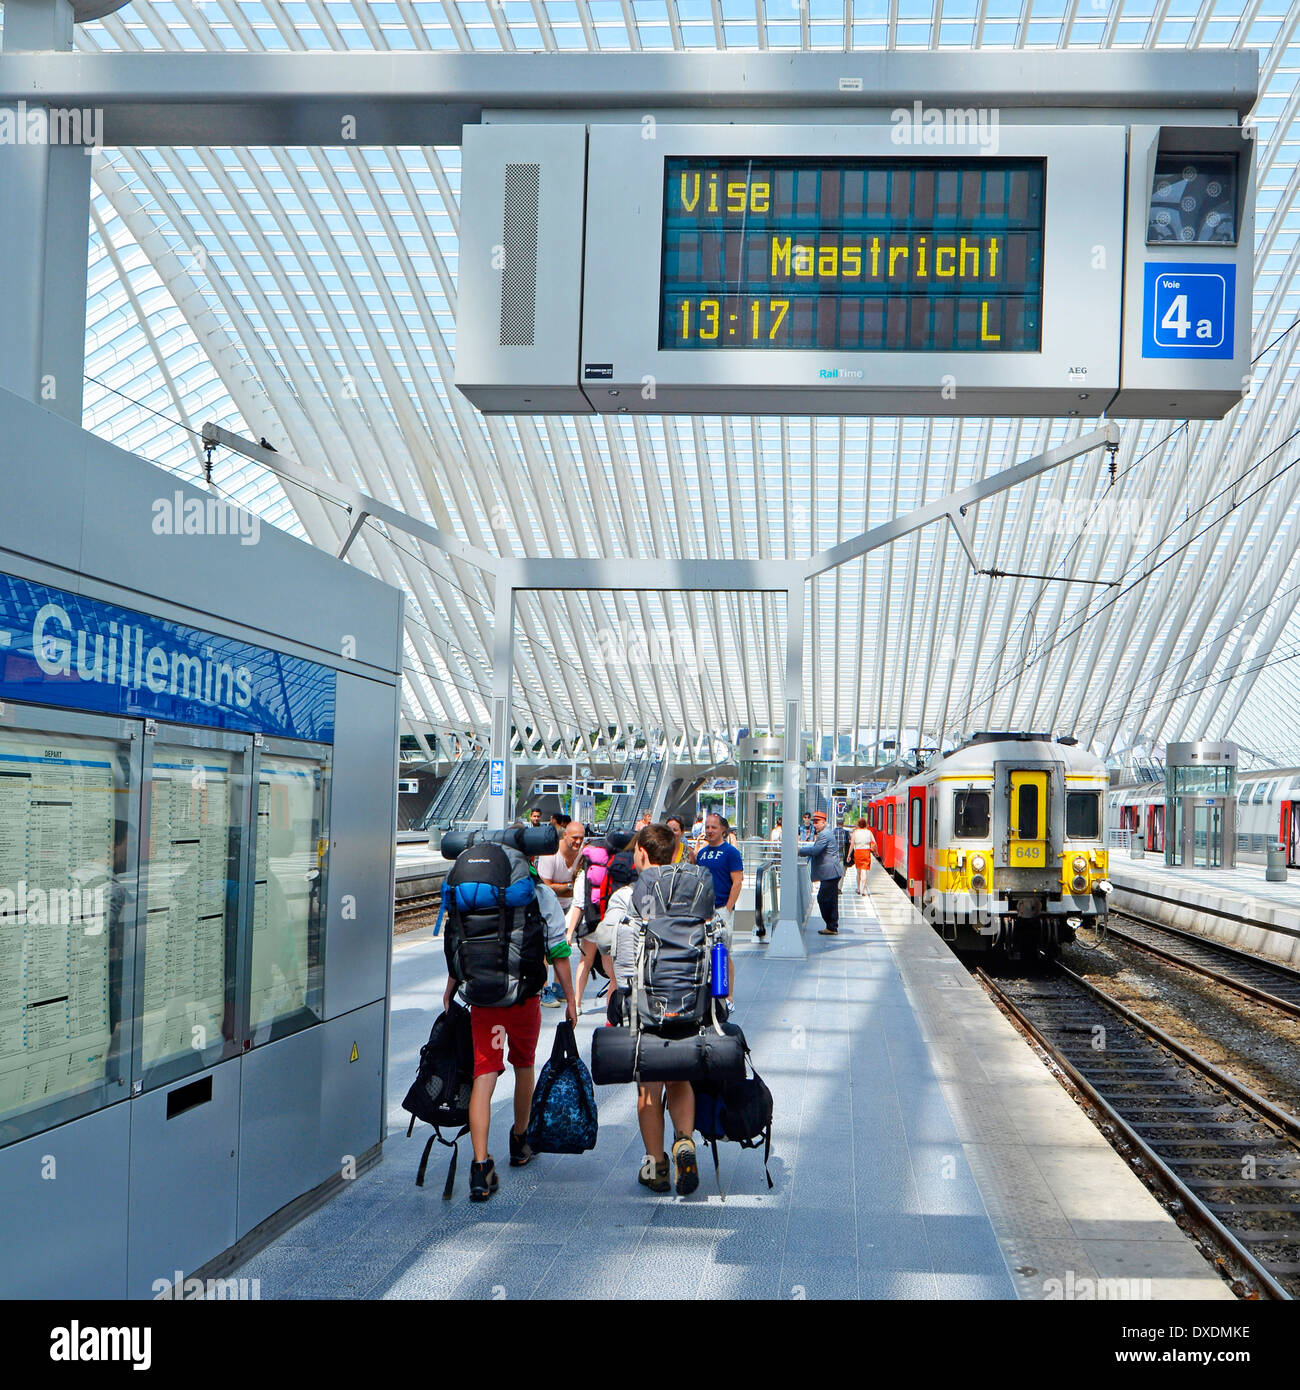 Backpackers group train station platform loaded with backpack kit in modern public transport glass roof building departures board Belgium Liege - Stock Image